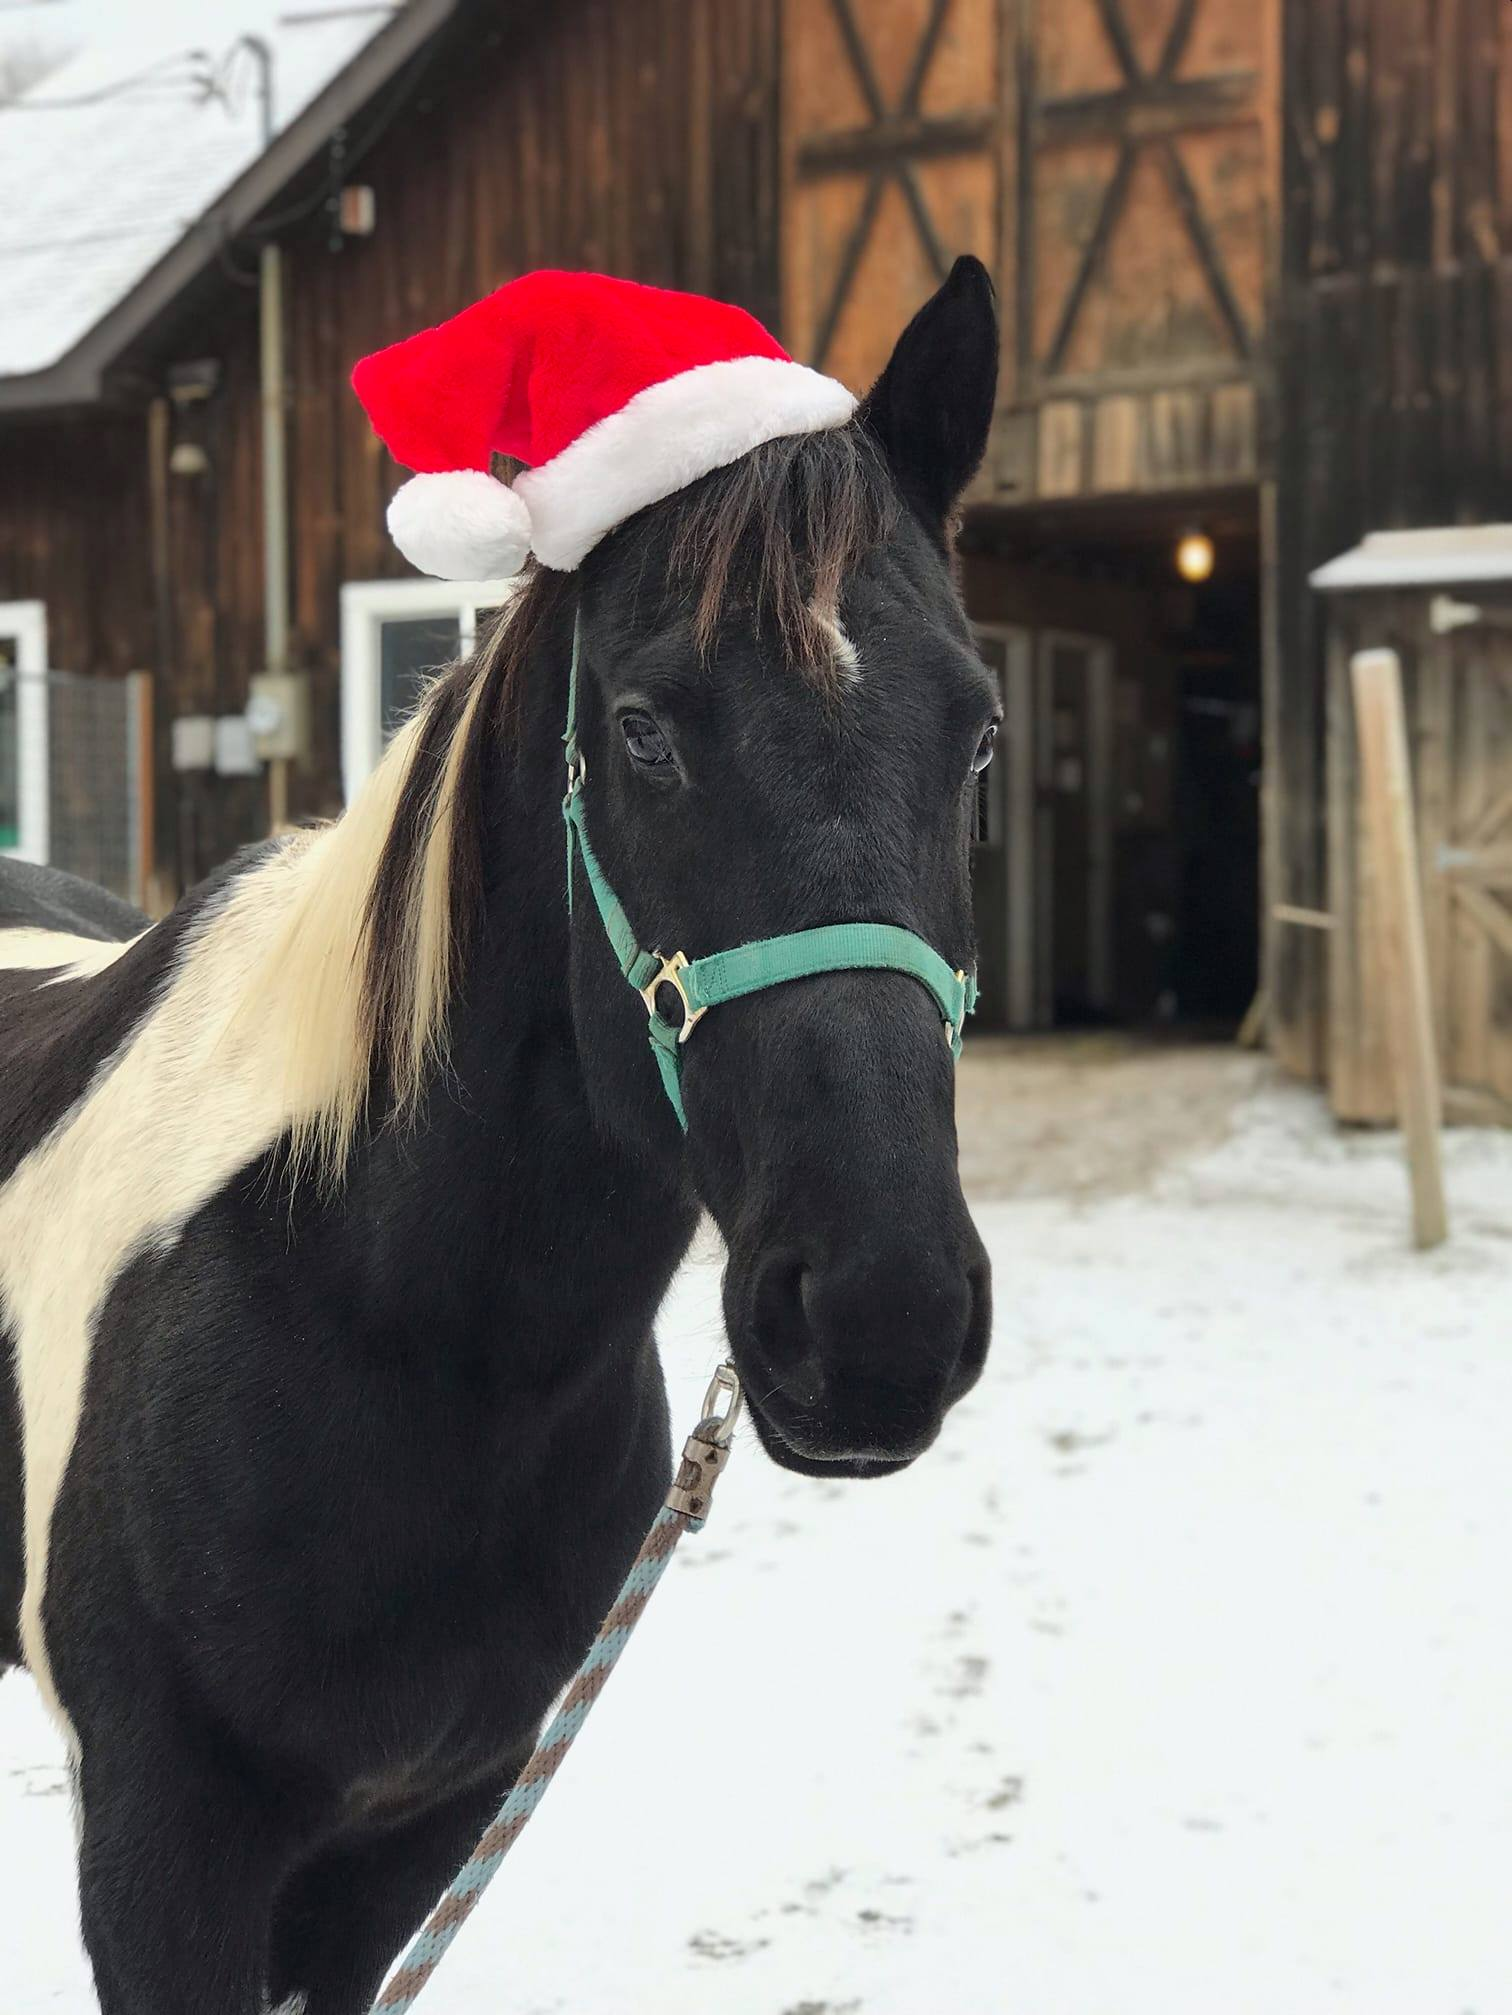 A Horse in a Santa hat infront of the barn